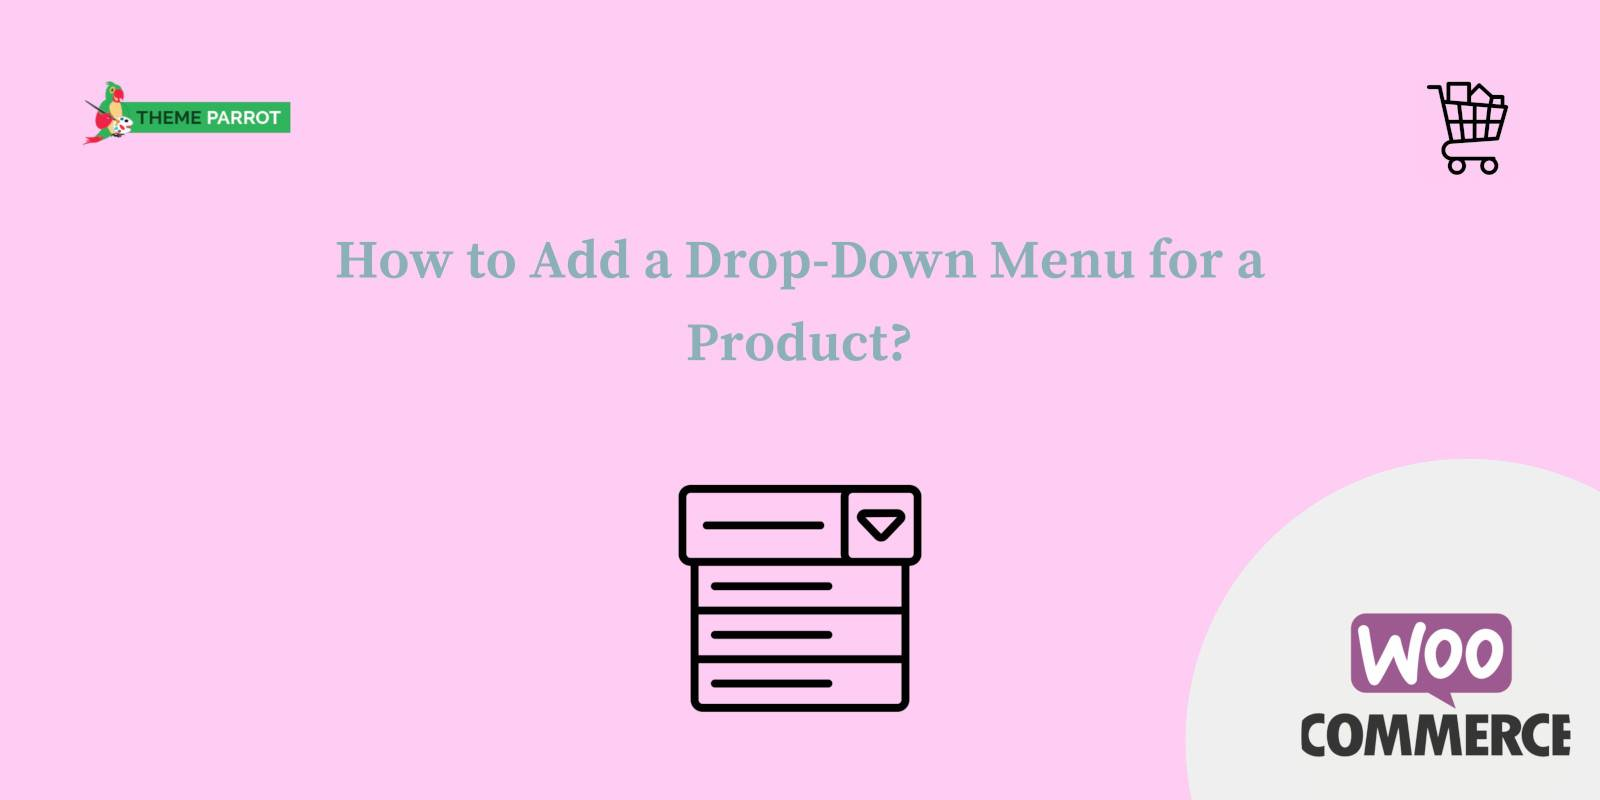 how to add a drop-down menu for a product